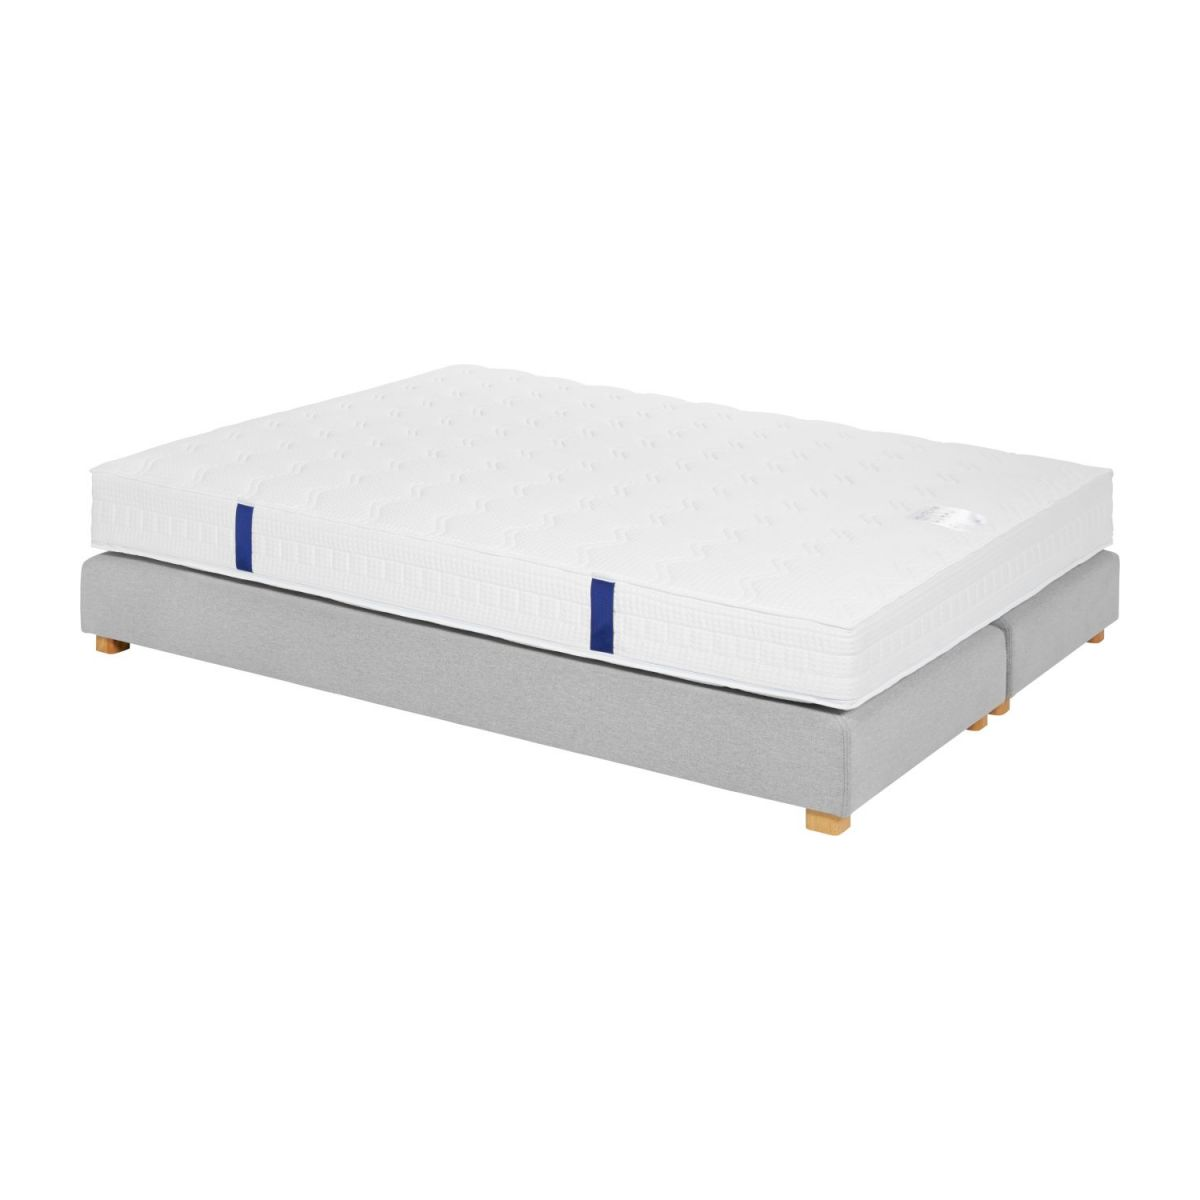 Spring mattress, width 20 cm, 140x200cm - firm support n°5